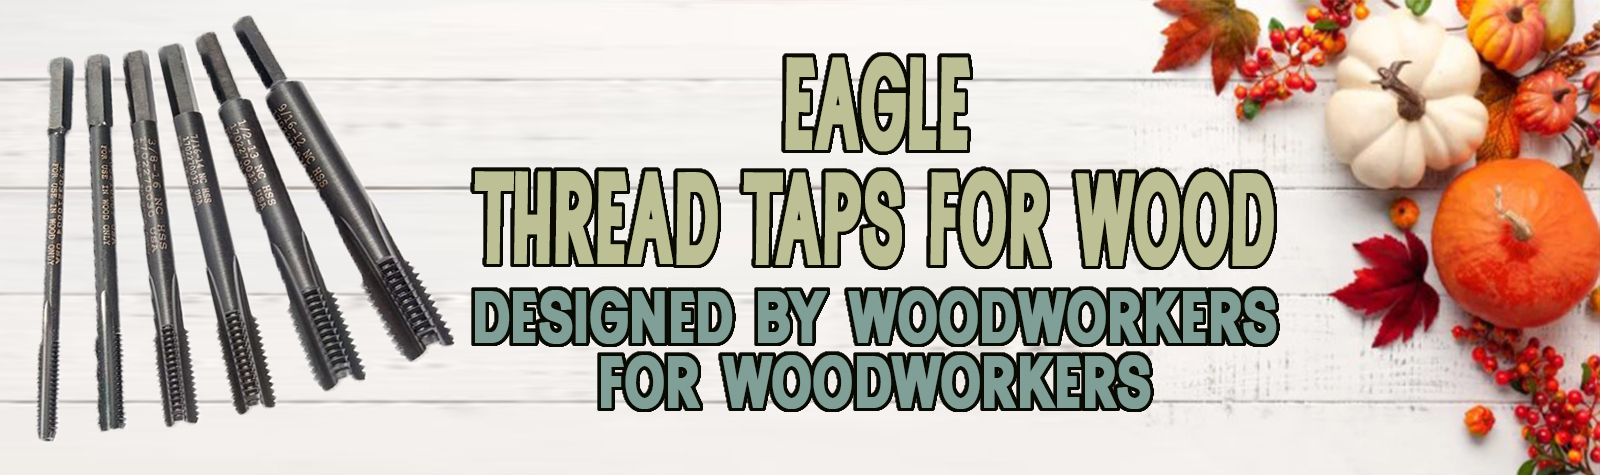 Thread Taps by EAGLE FOR Wood--Designed BY Woodworkers, FOR Woodworkers